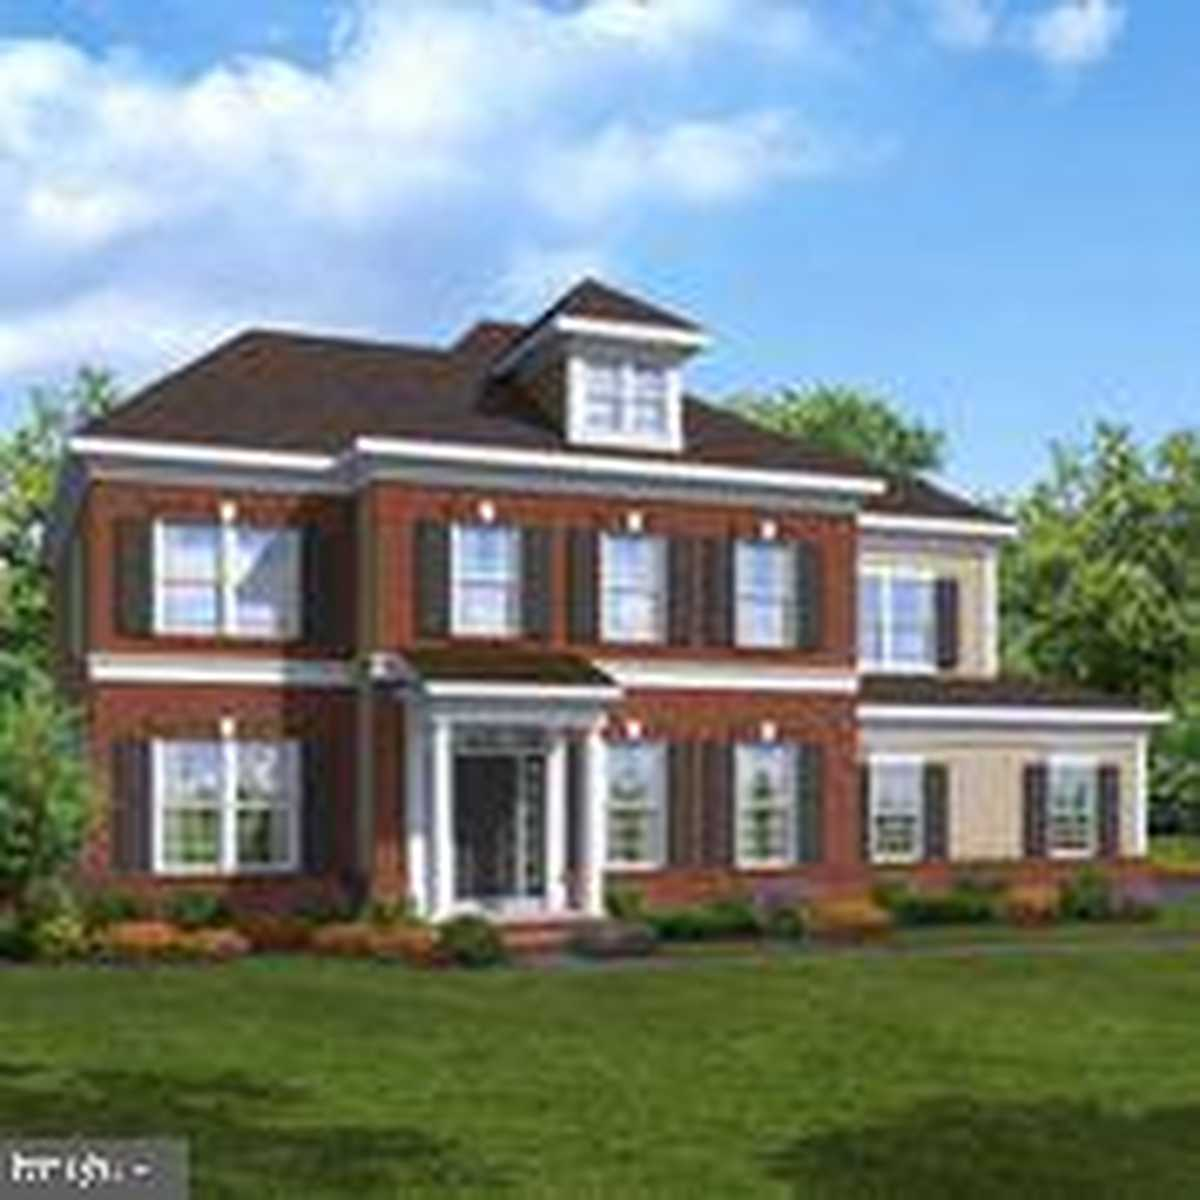 $600,900 - 4Br/3Ba -  for Sale in Village Of Bayberry, Middletown